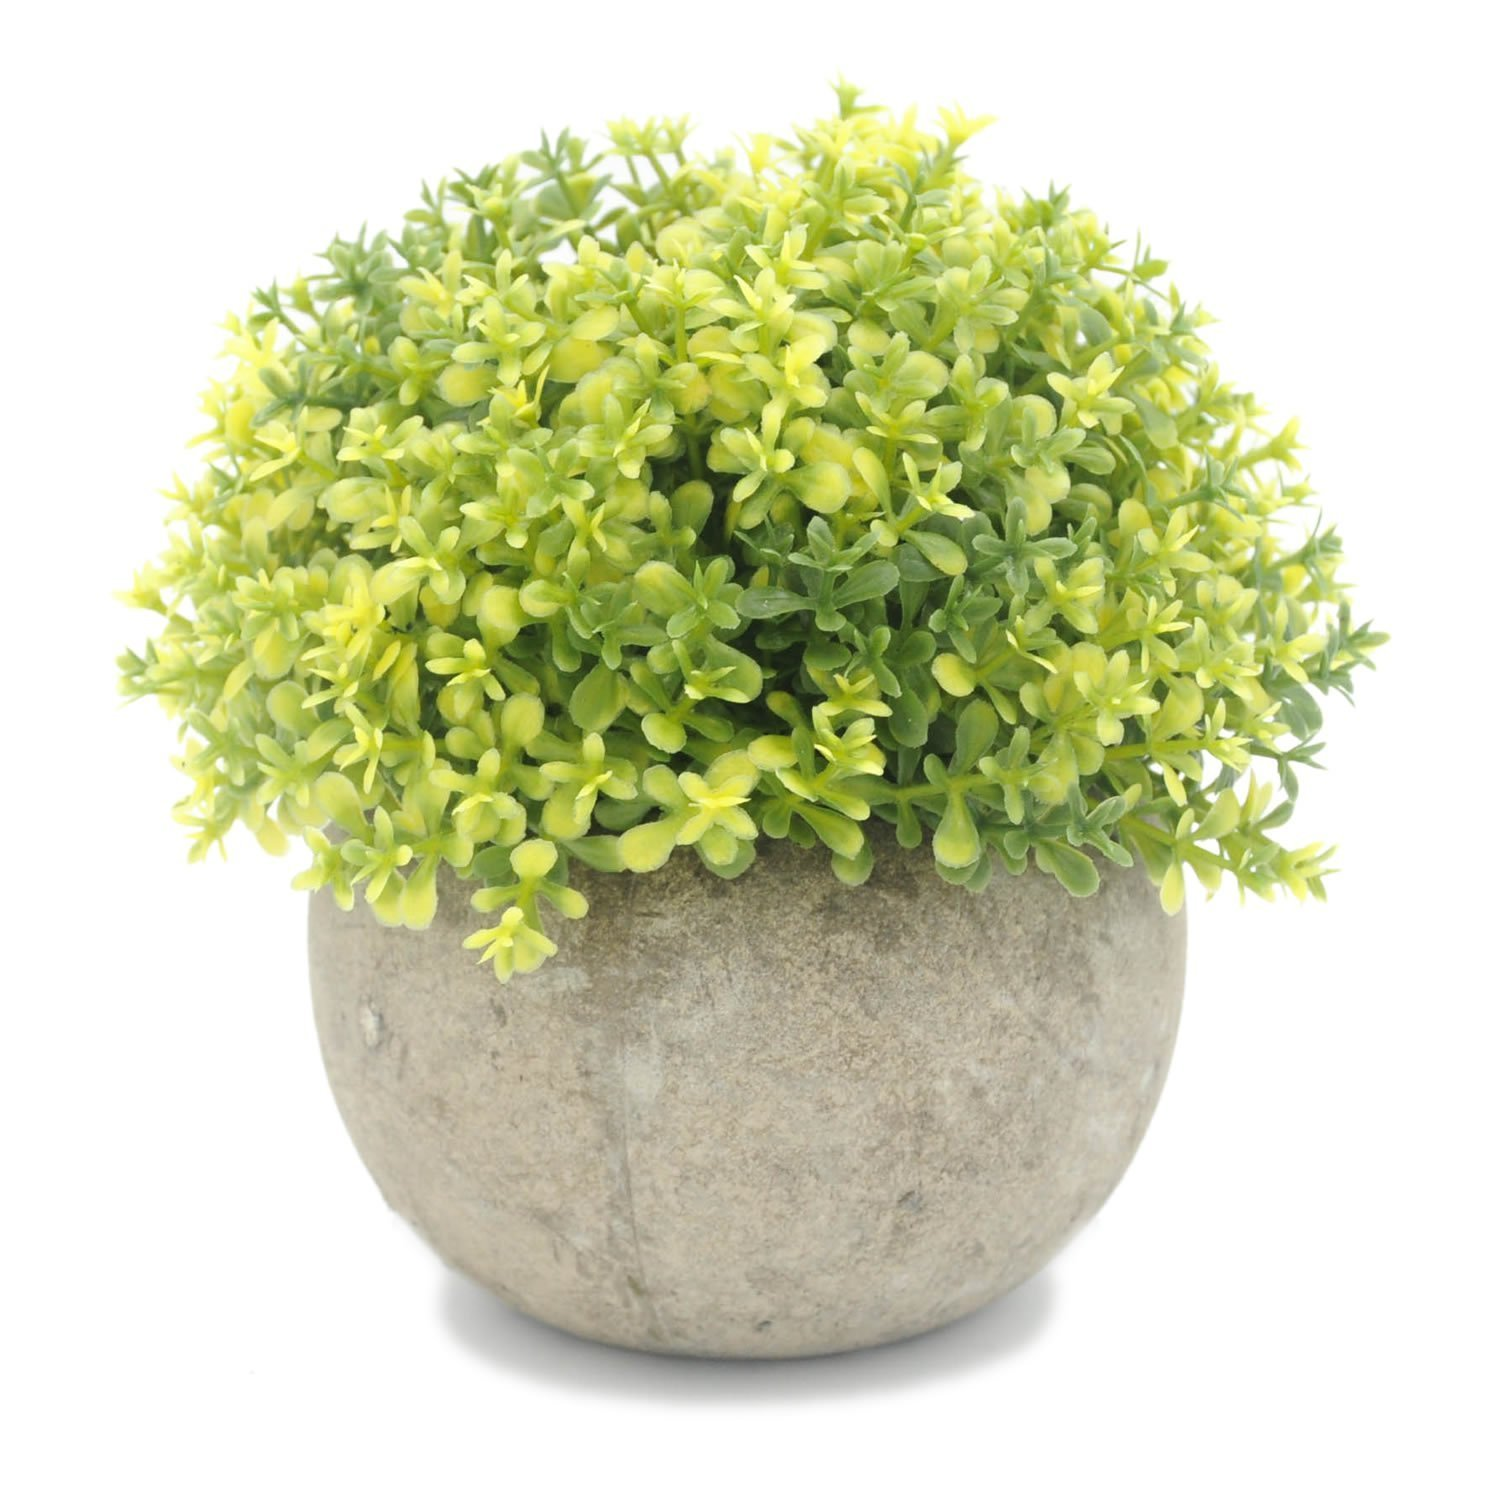 OKFCUS Artificial Ball Topiary Plants Grass Fake Floral Plastic Flowers with Pots For Office Hotel Wedding Table Decor